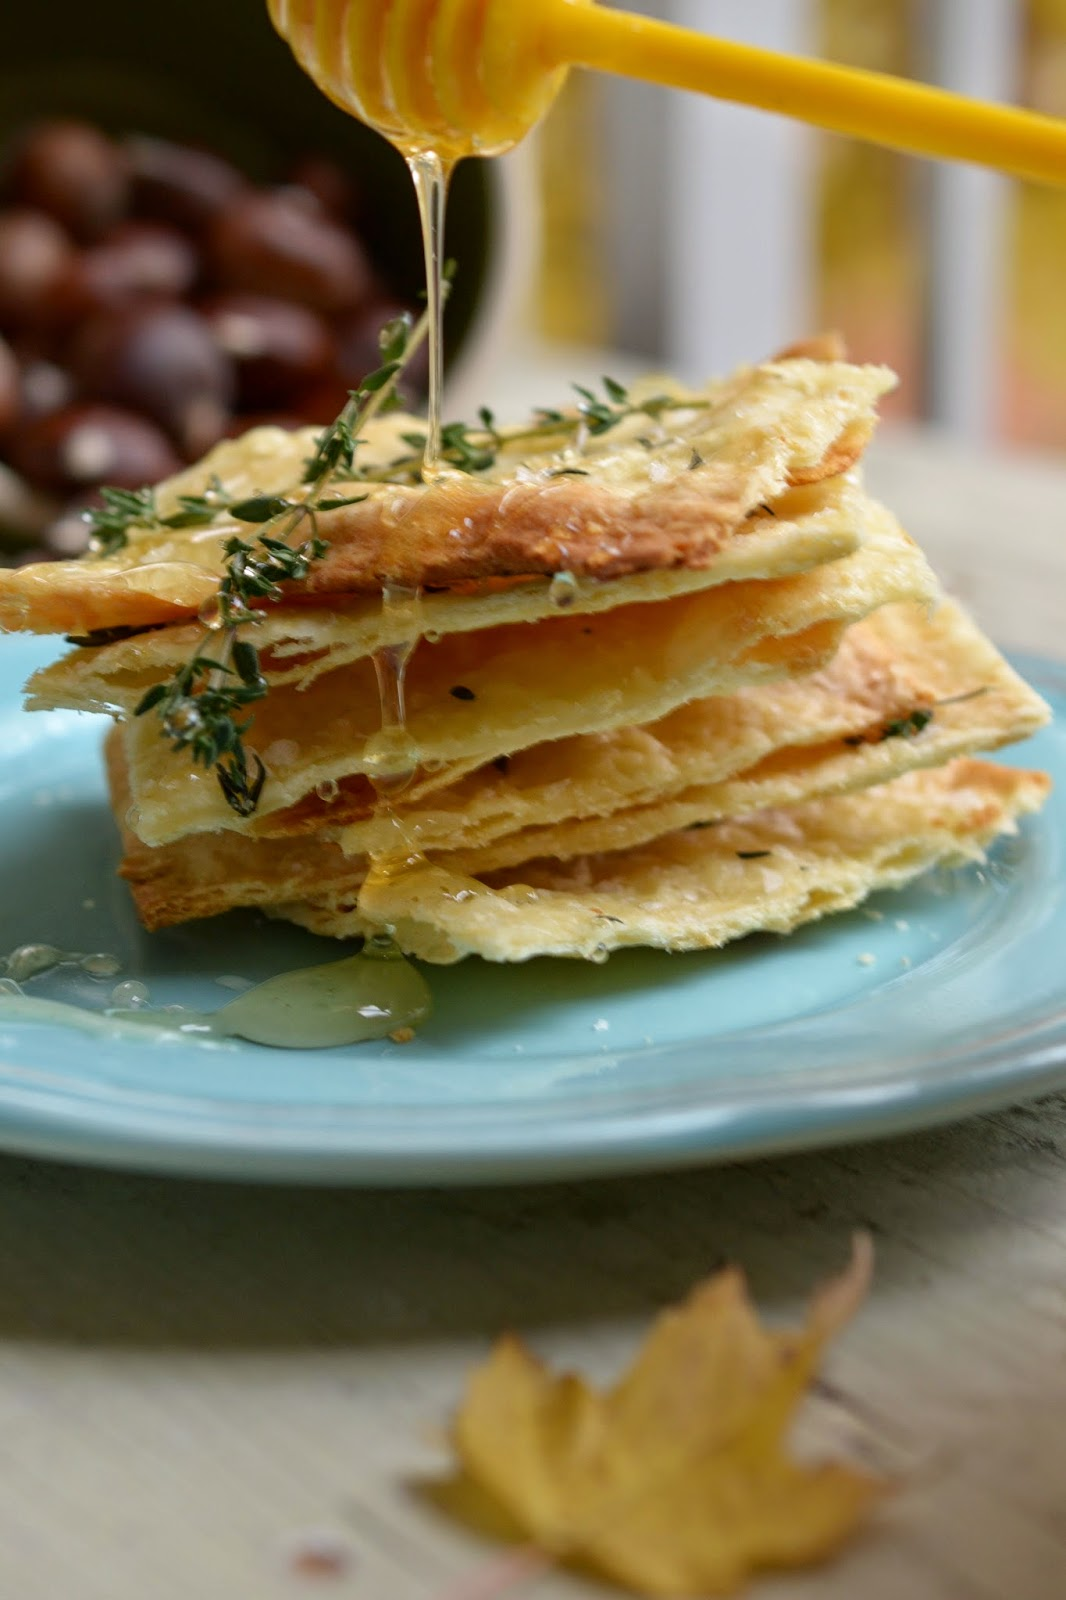 ... Supper Club with Crisp Flat Breads with Honey, Thyme and Sea Salt